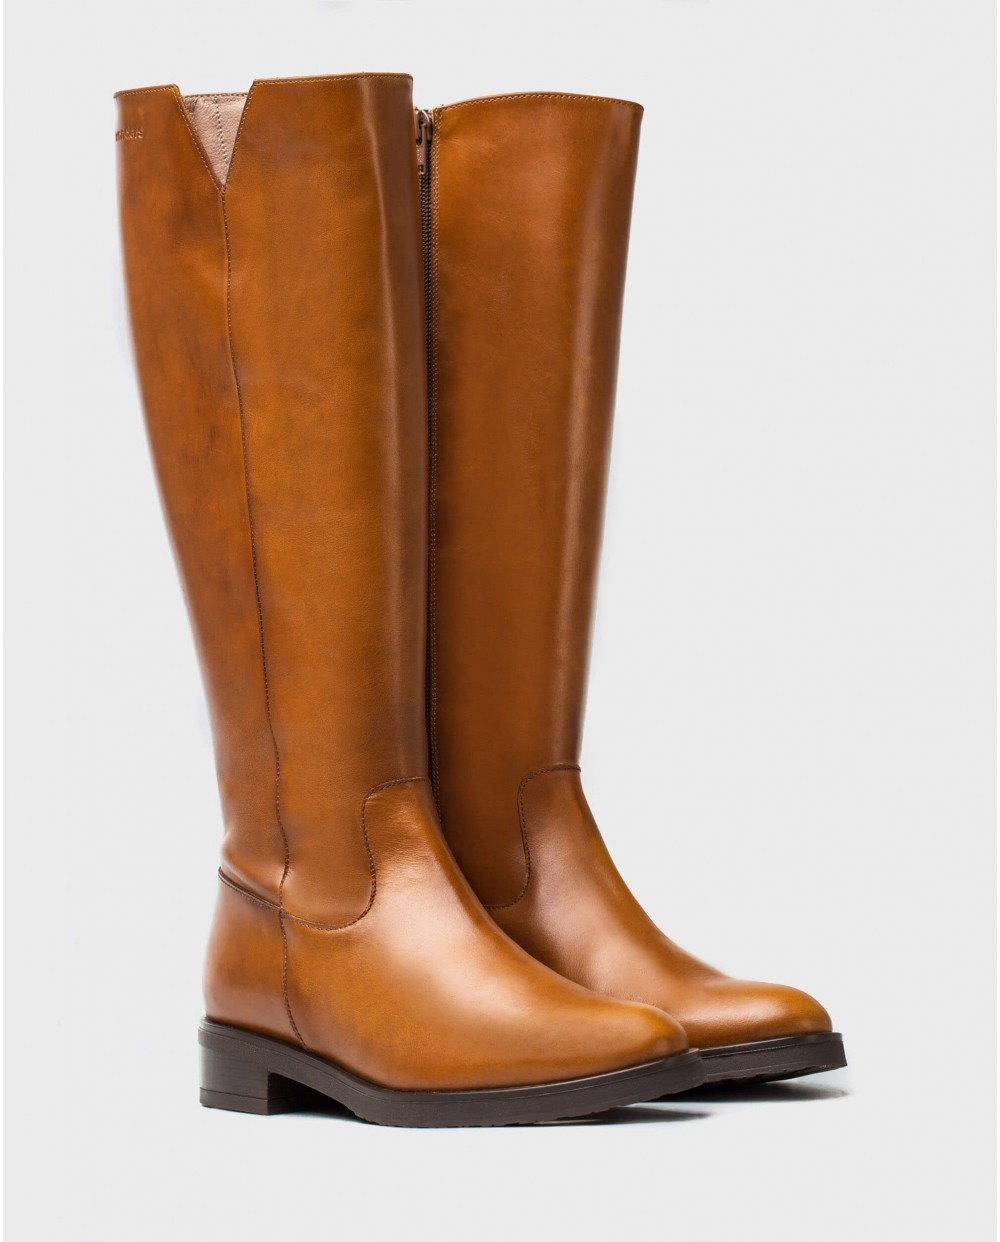 Wonders-Boots-V cut leather boot